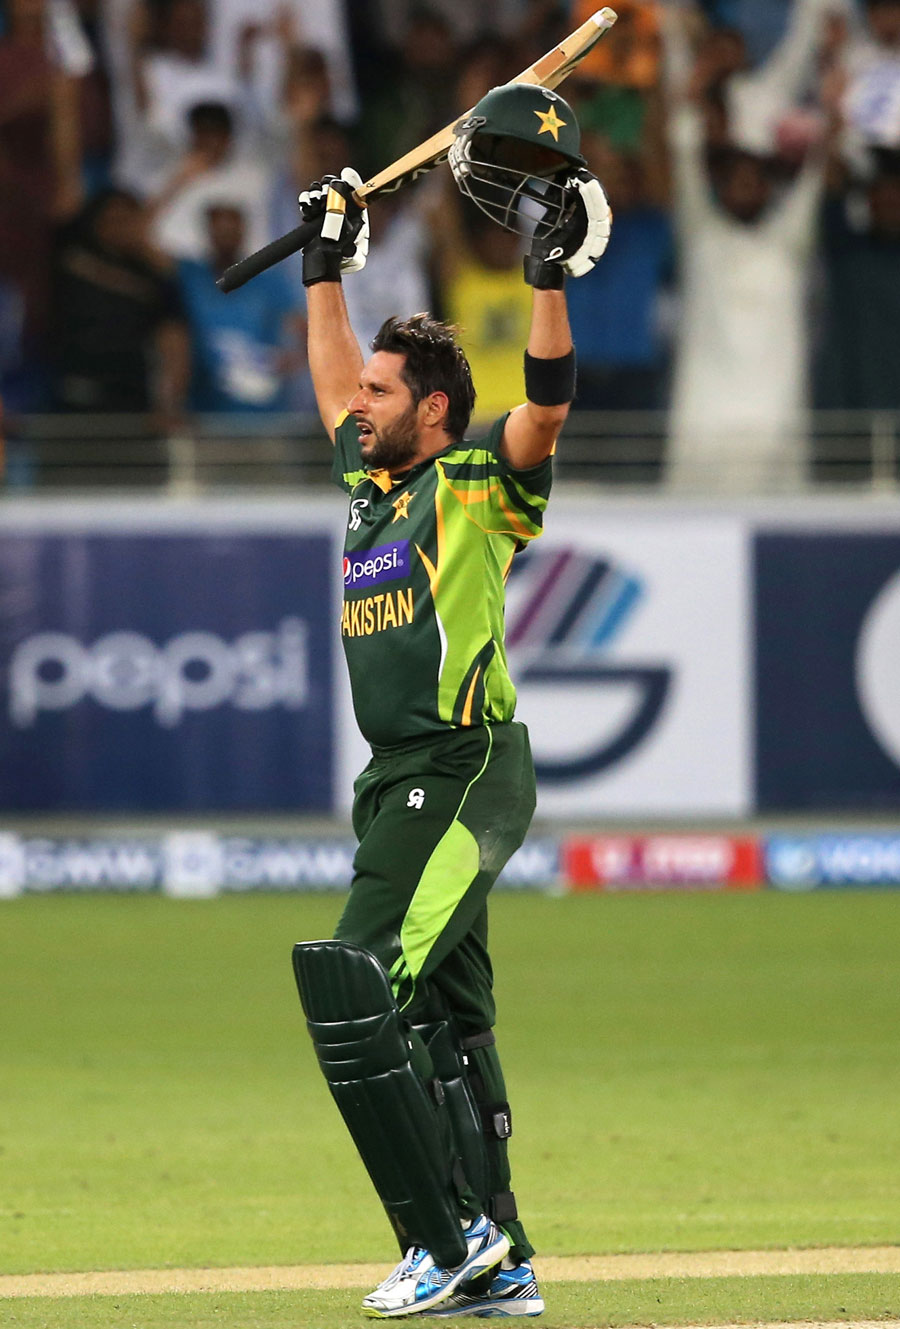 ... hitting the winning six for Pakistan | Cricket Photo | ESPN Cricinfo